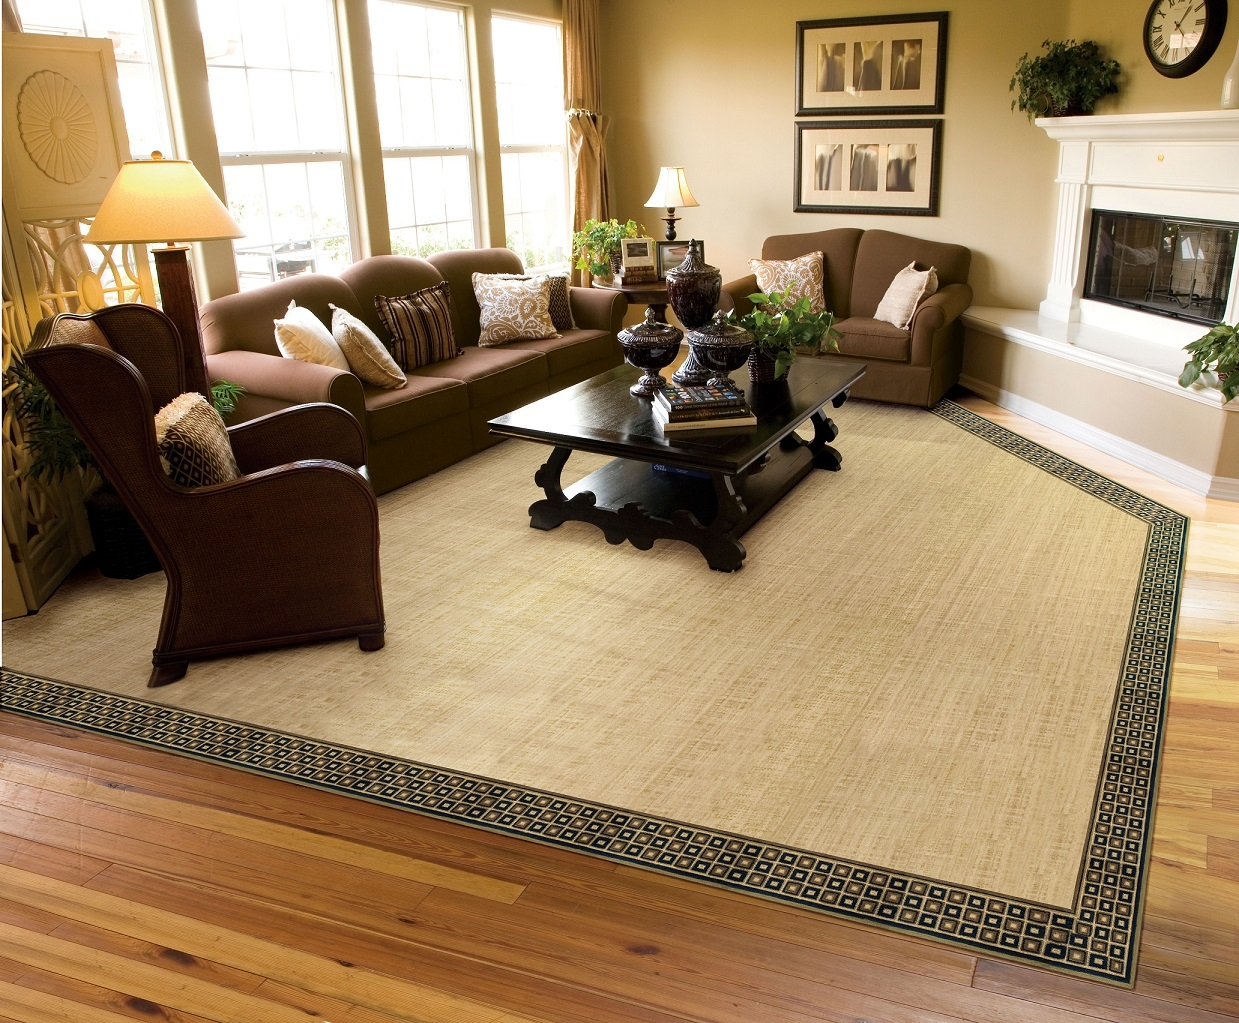 Area Rugs Carpet Hardwood Laminate Flooring In San Francisco With Regard To Customized Rugs (View 10 of 15)